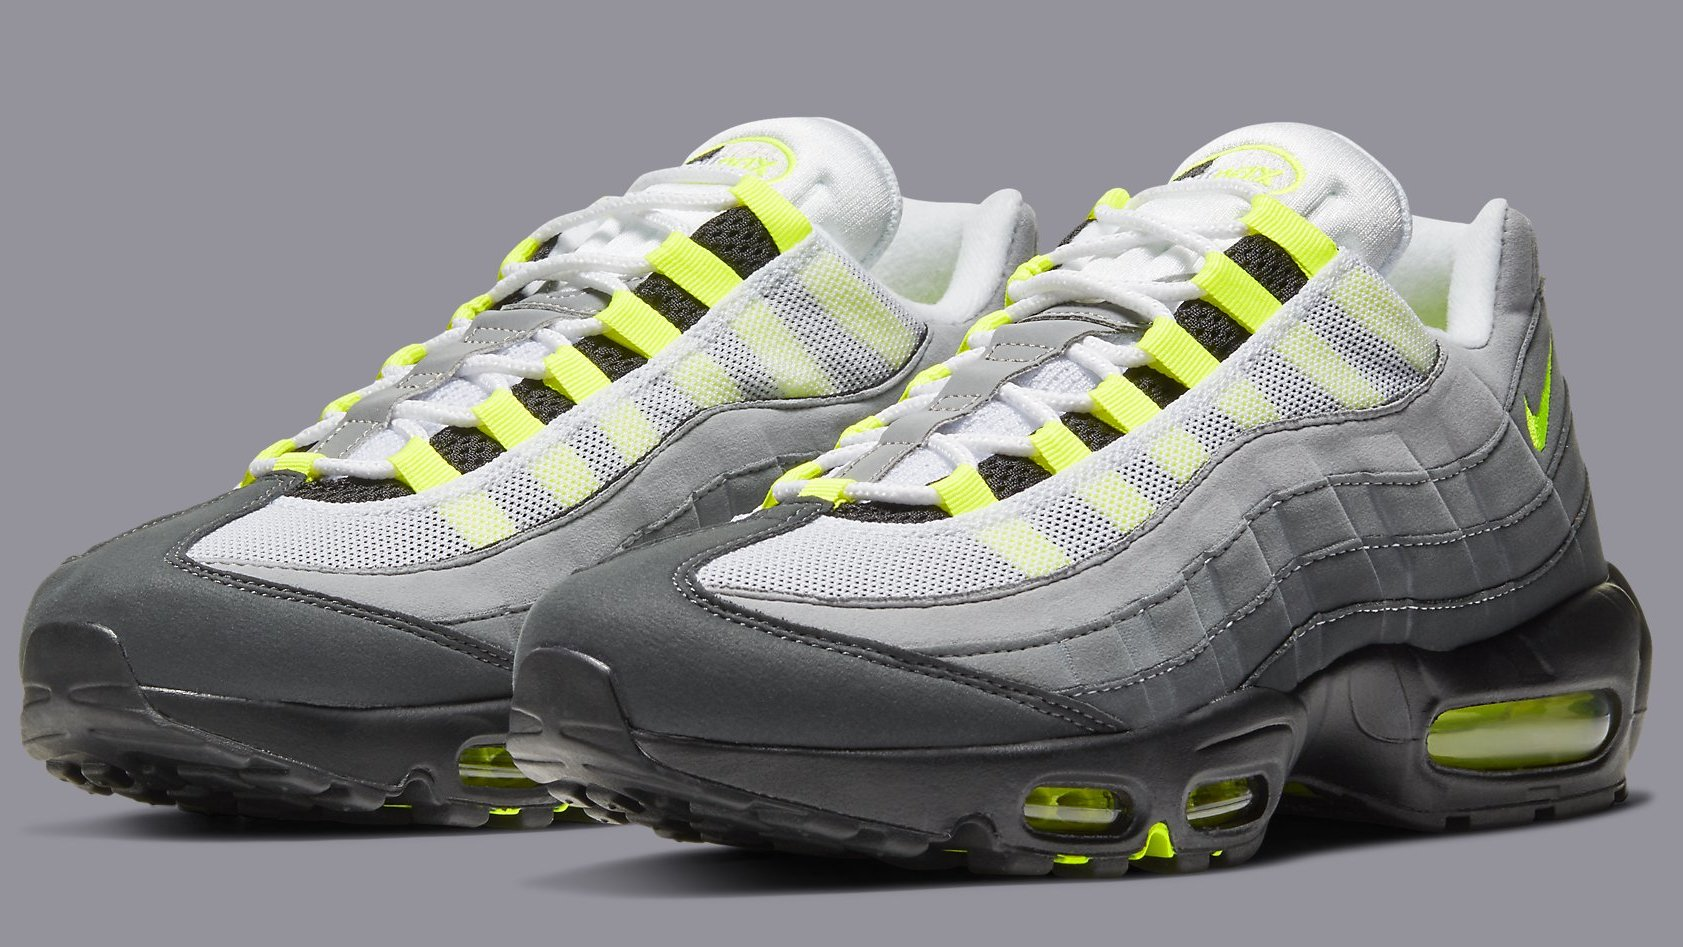 Nike Air Max 95 'Neon' Release Date CT1689-001 | Sole Collector